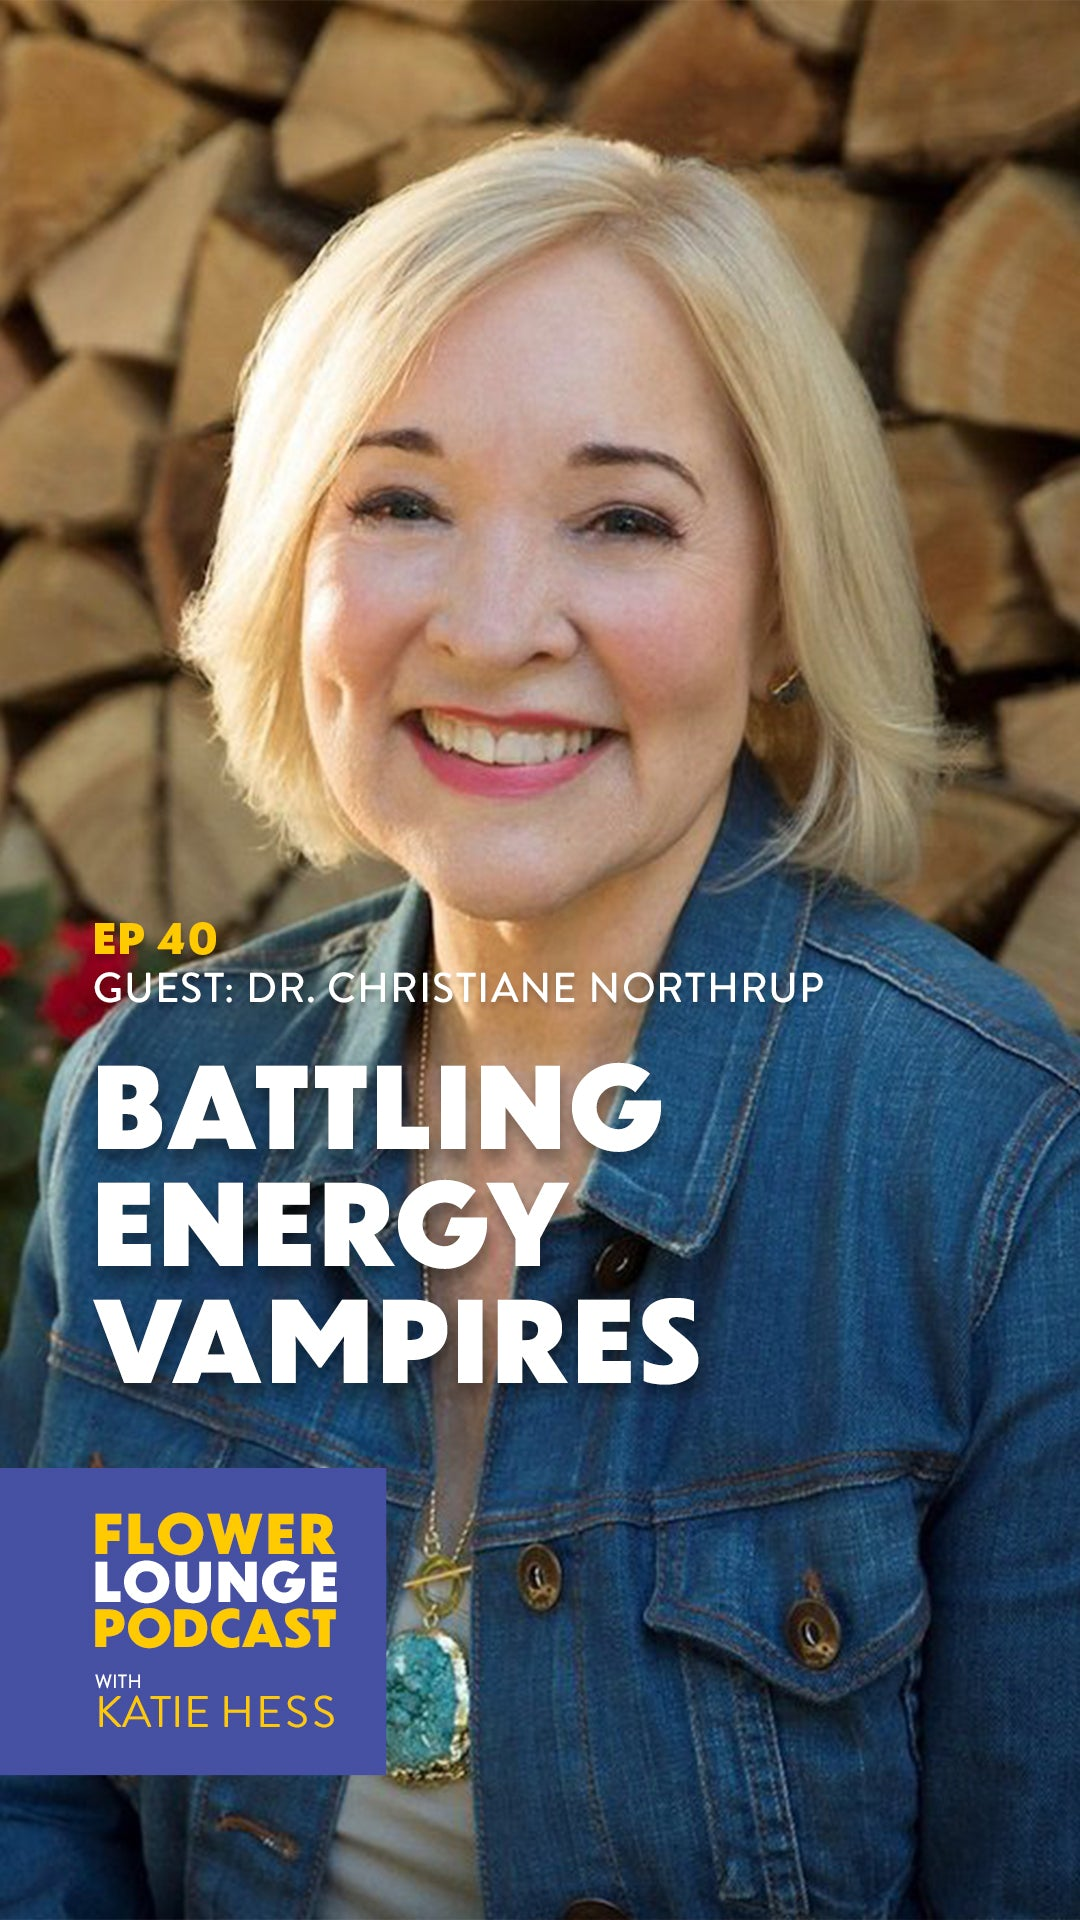 Battling Energy Vampires with Christiane Northrup on the Flowerlounge Podcast with Katie Hess